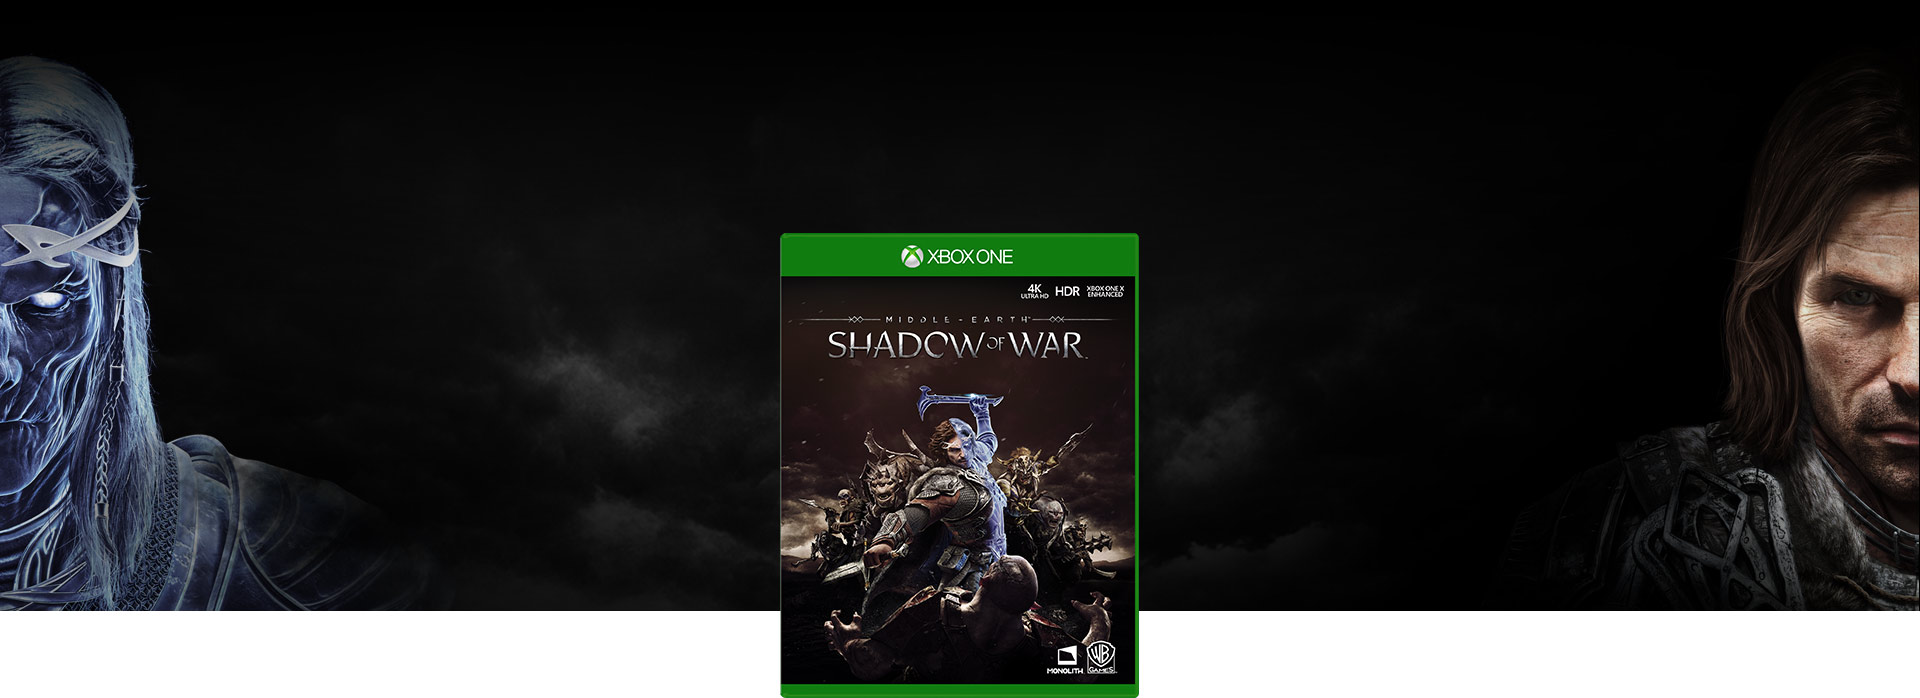 middle earth shadow of war boxshot. Human face and ghost face of talion opposite each other